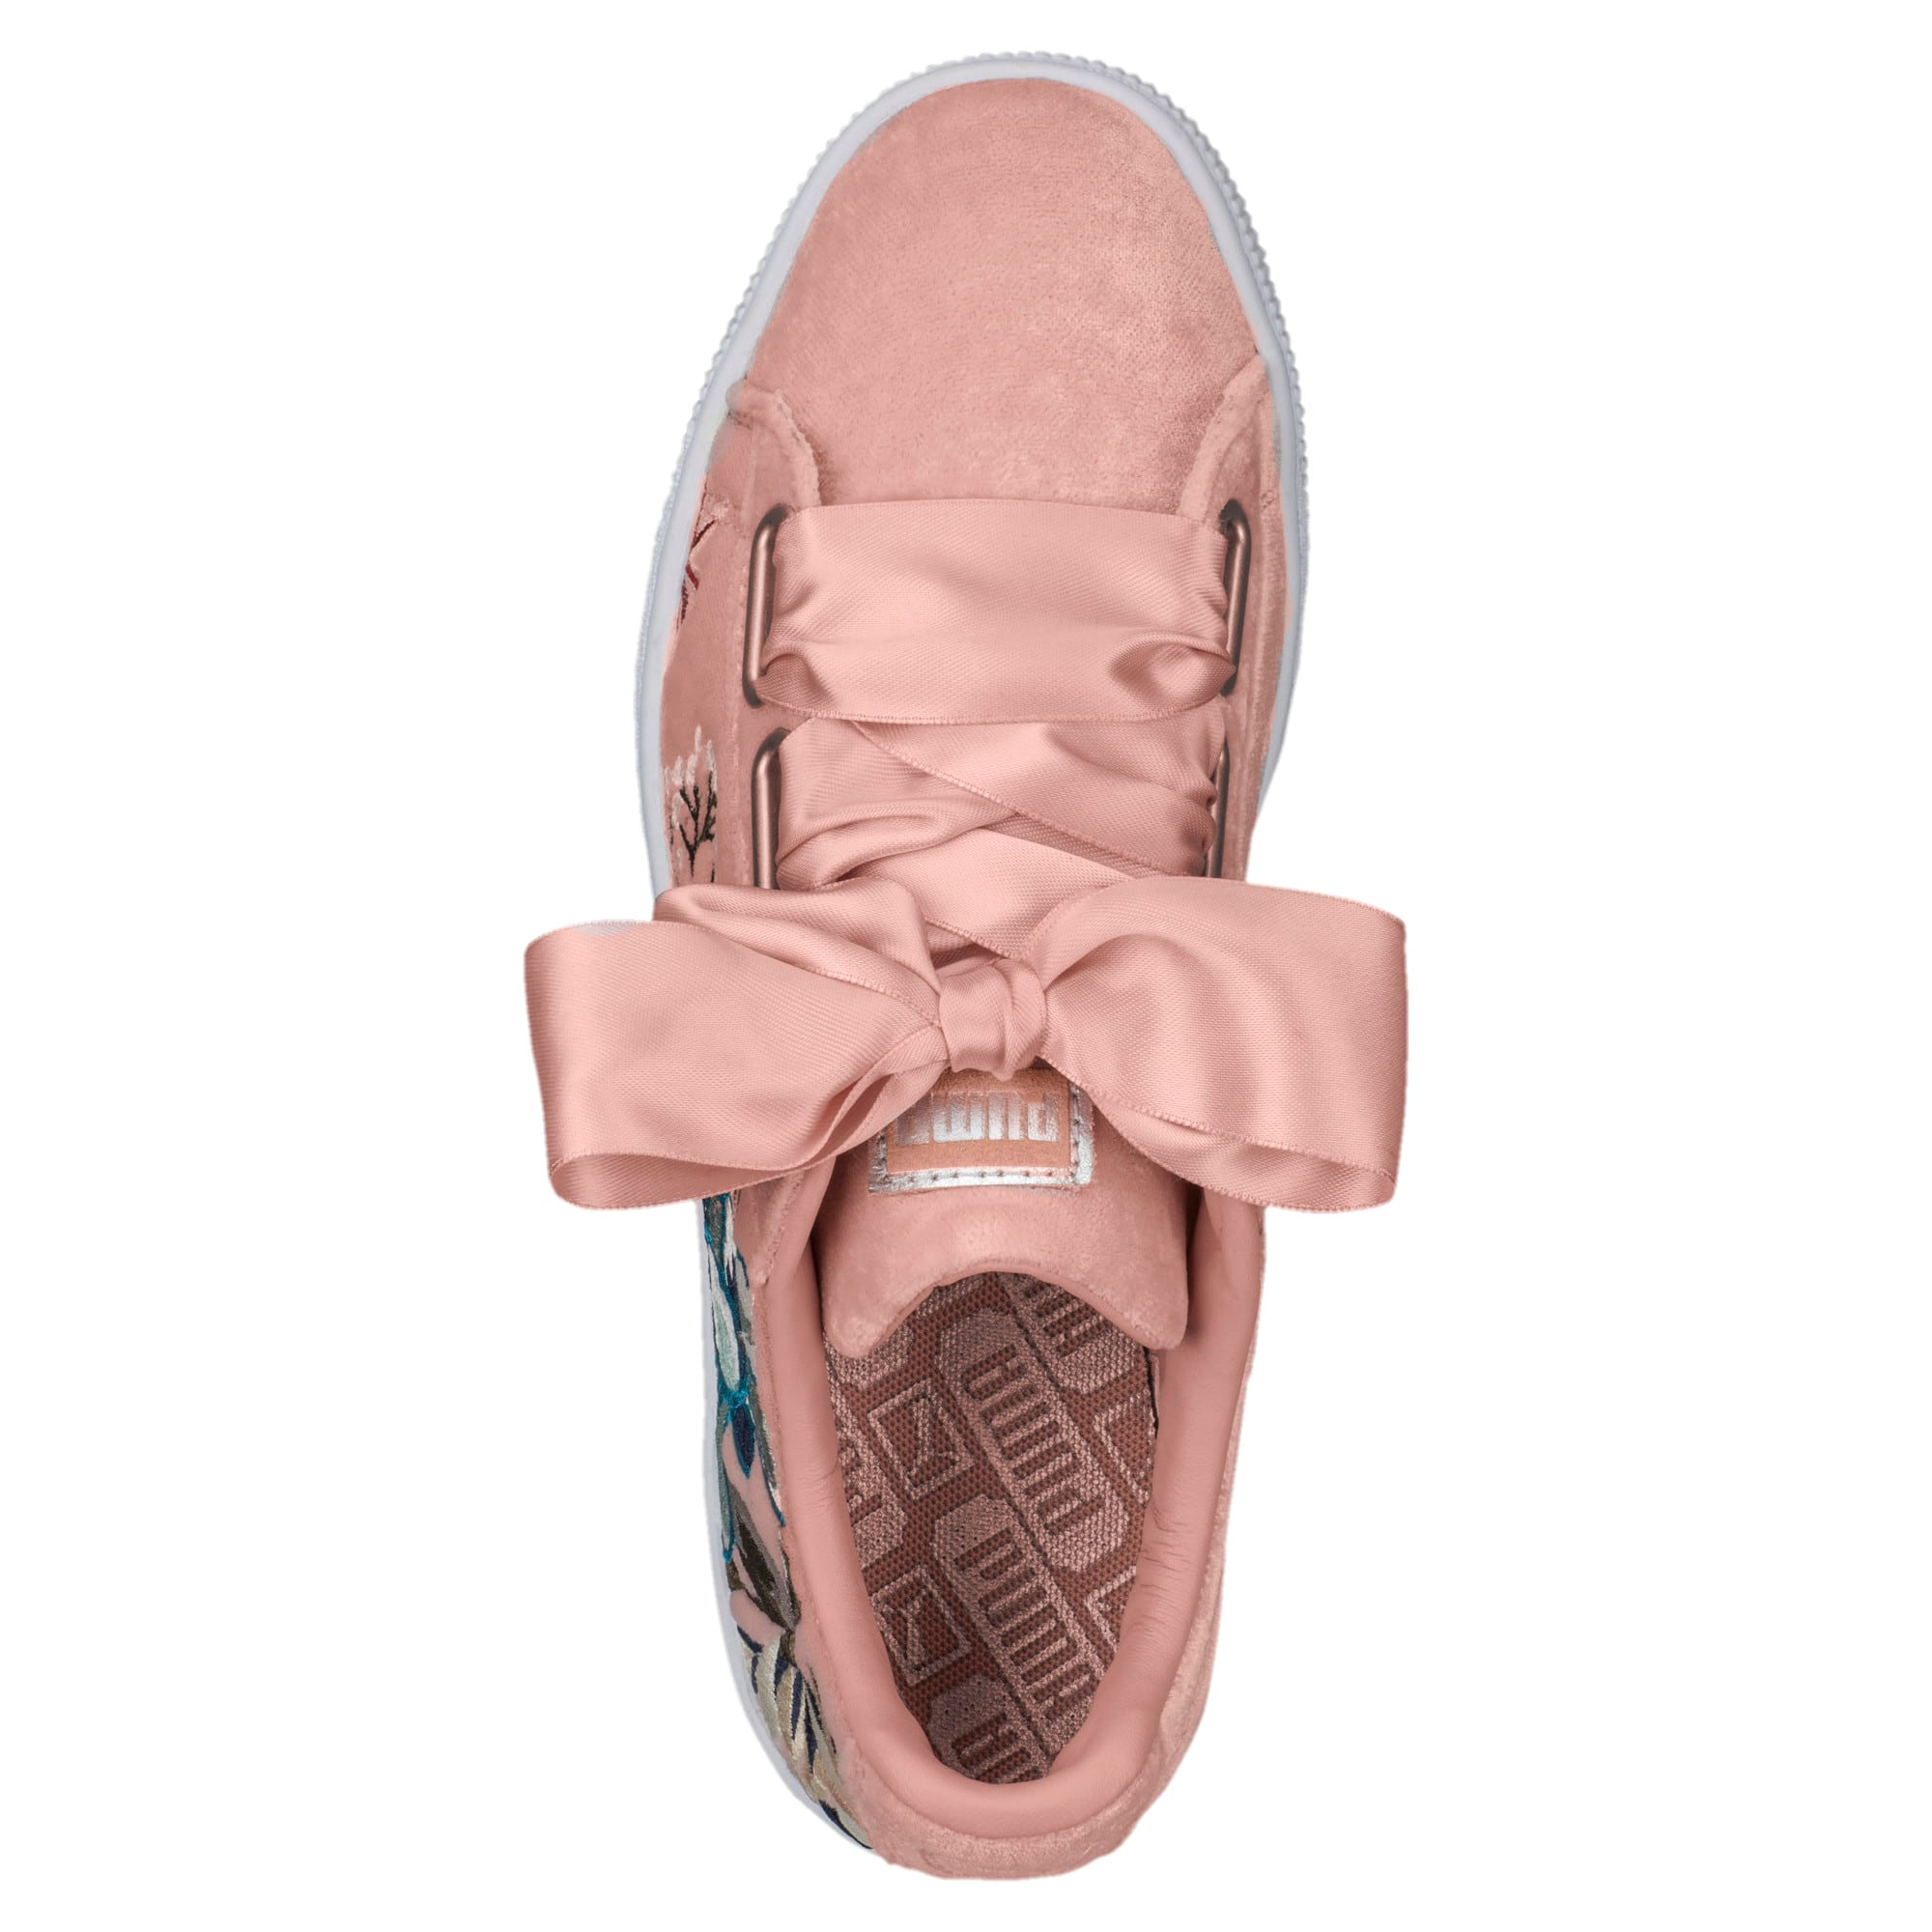 Thumbnail 5 of Basket Heart Hyper Embroidery Women's Trainers, Peach Beige, medium-IND